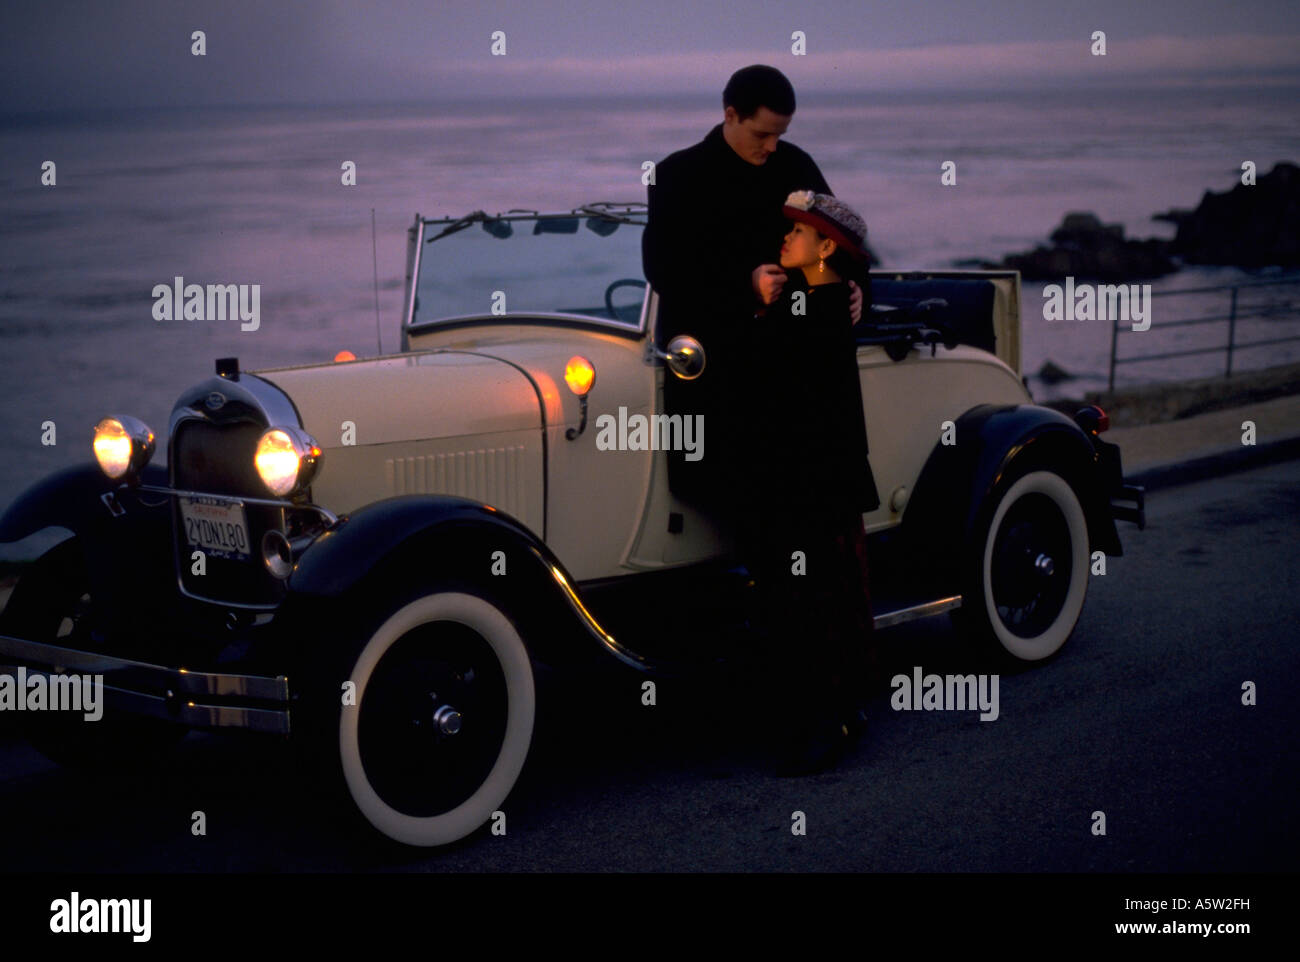 Painet hl1090 couple embracing next antique car california monterey man male woman female old automobile beach front - Stock Image